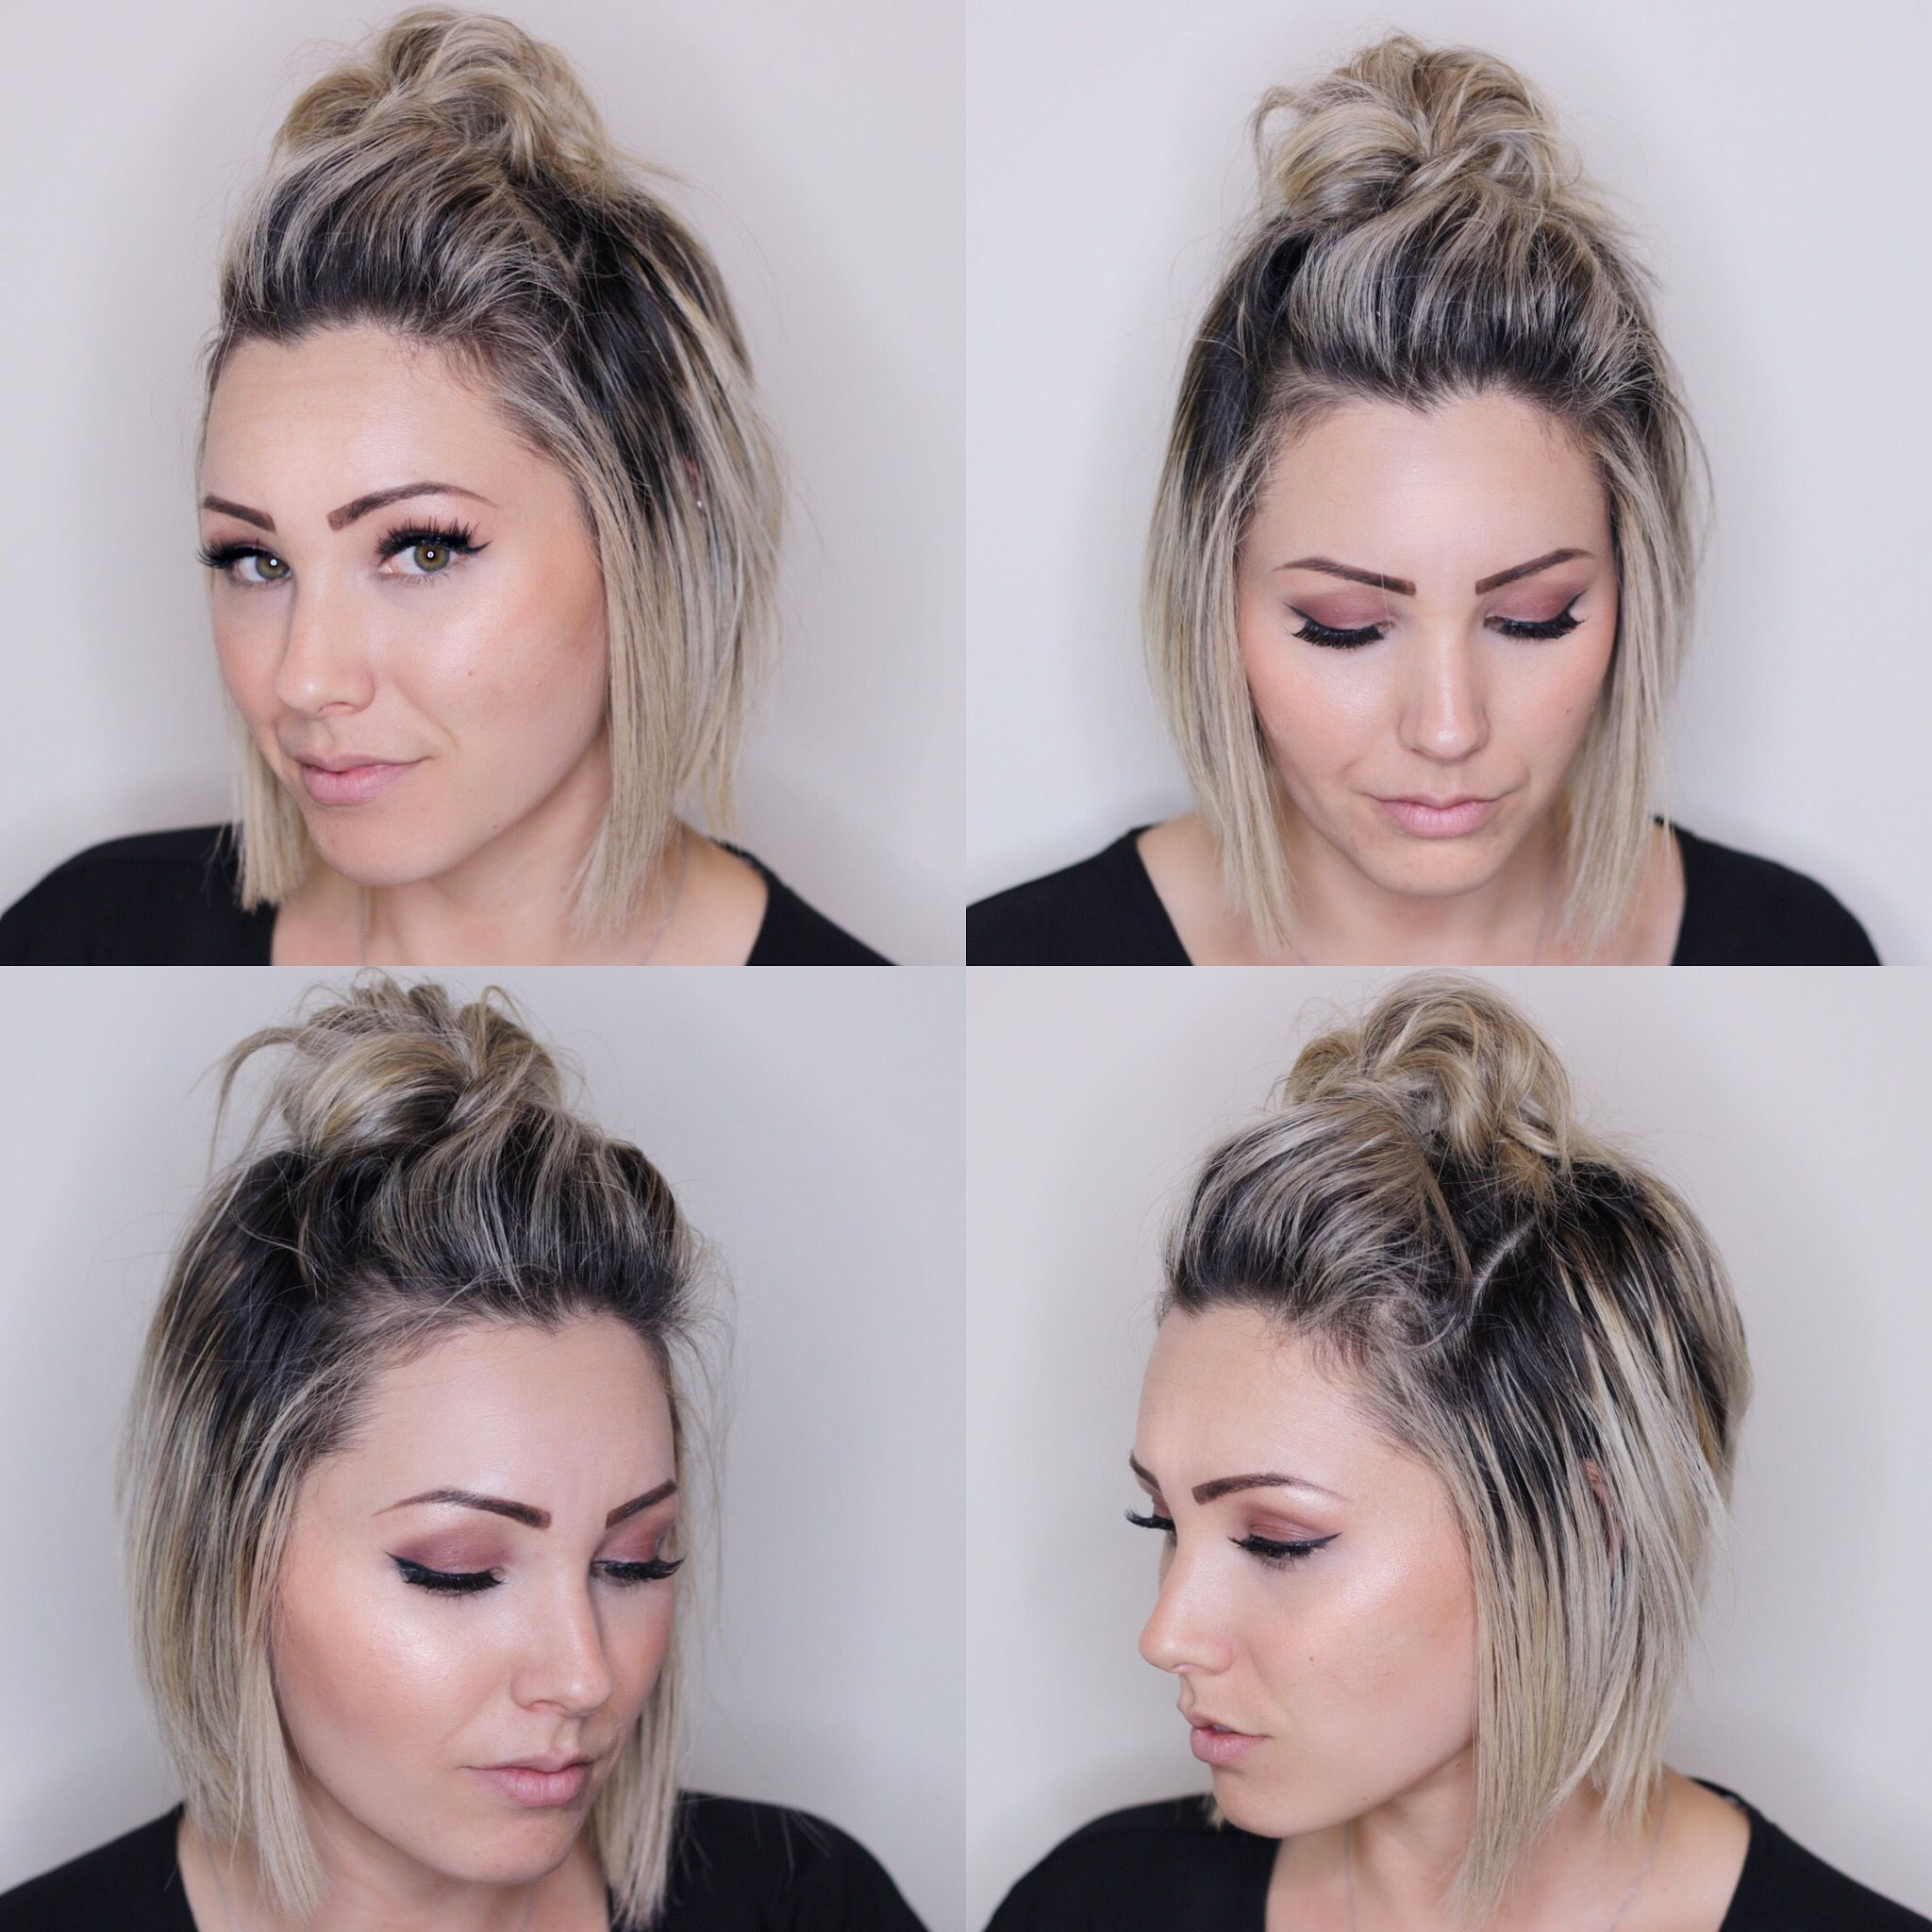 top knot for short hair. short hairstyle. soft bob haircut | H A I R ...